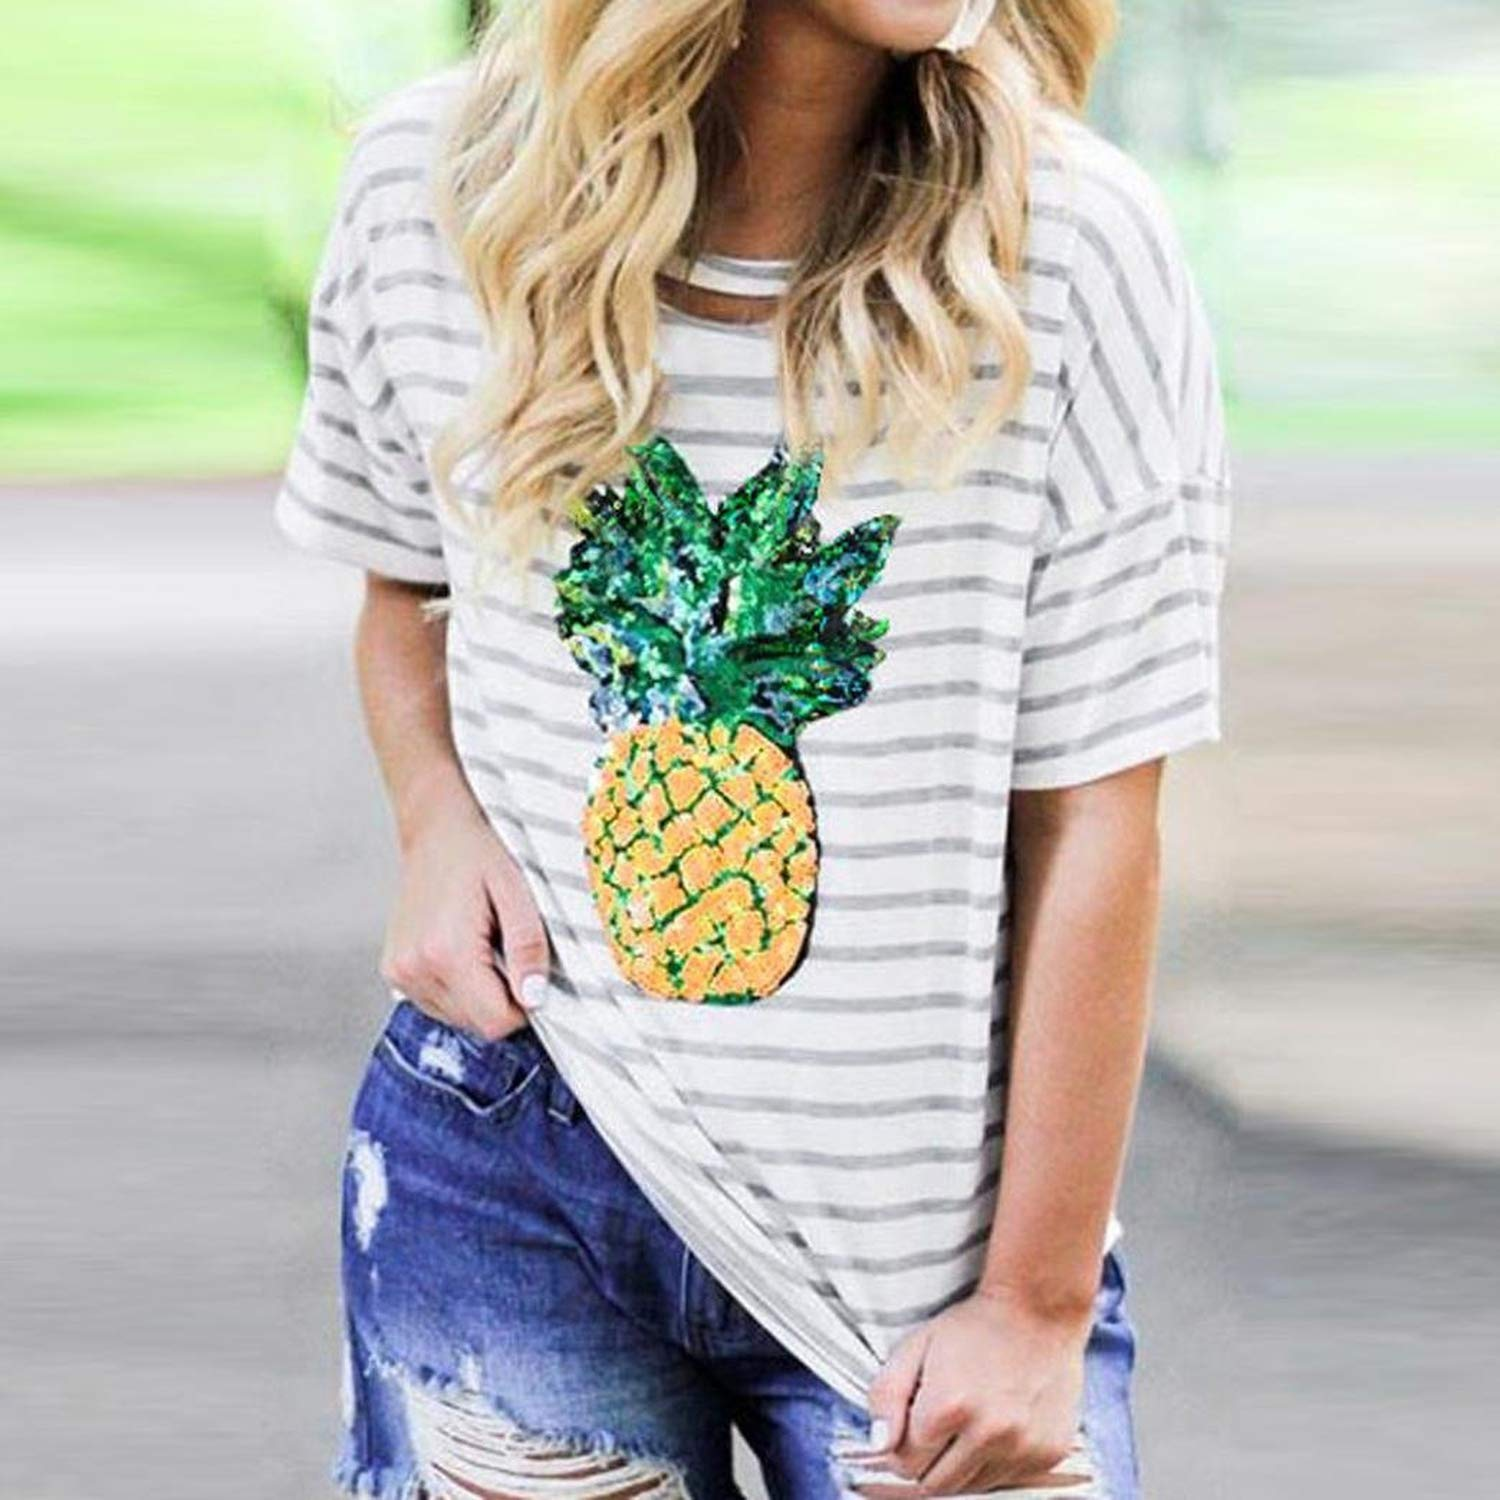 a419dff42 Women Short Sleeve Pineapple Printing Crop Top T-Shirt Tops Tee for Summer,  White-1, Large at Amazon Women's Clothing store: